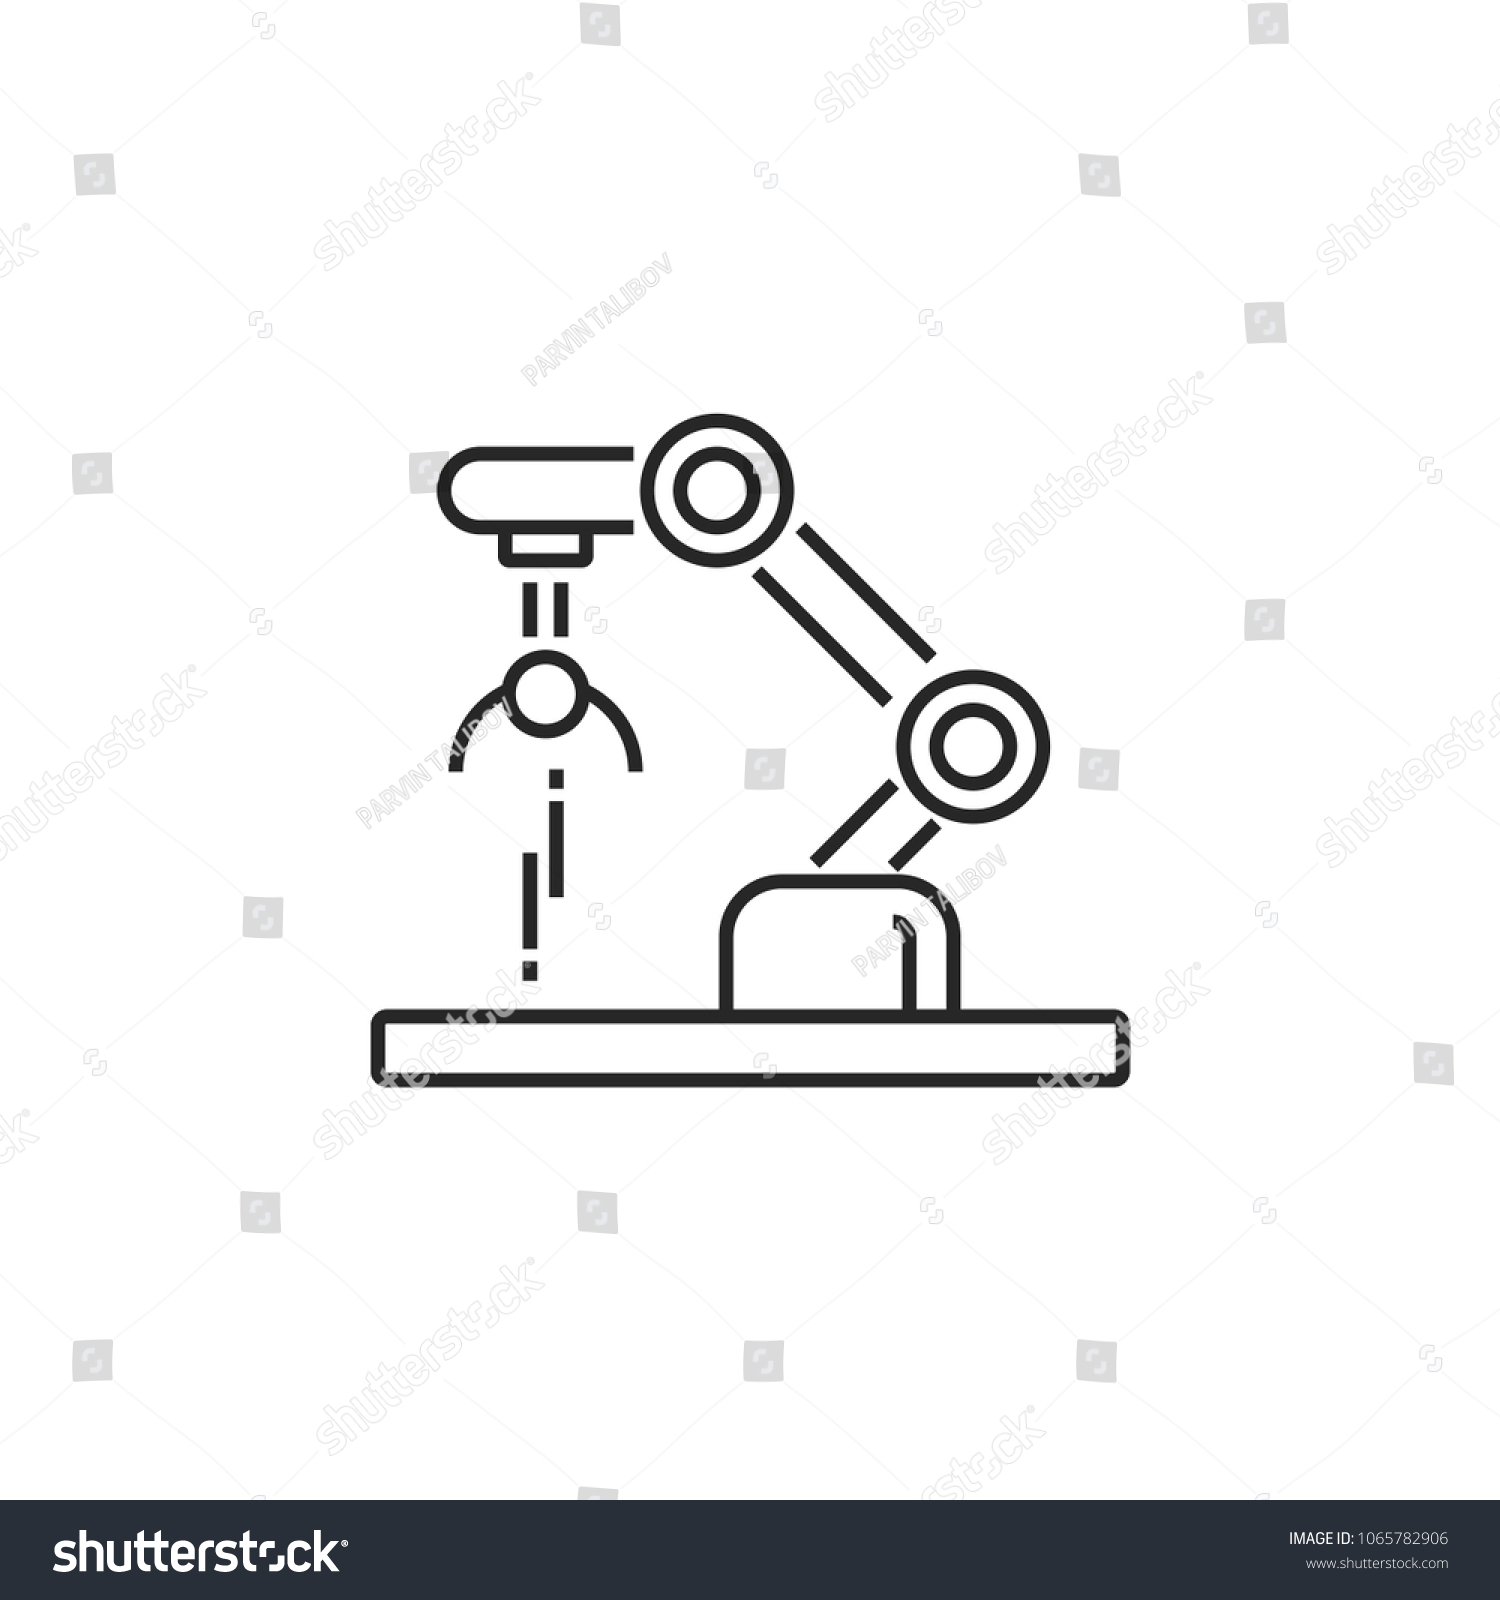 Robotics Modern Simple Outline Vector Icon Stock Vector Royalty